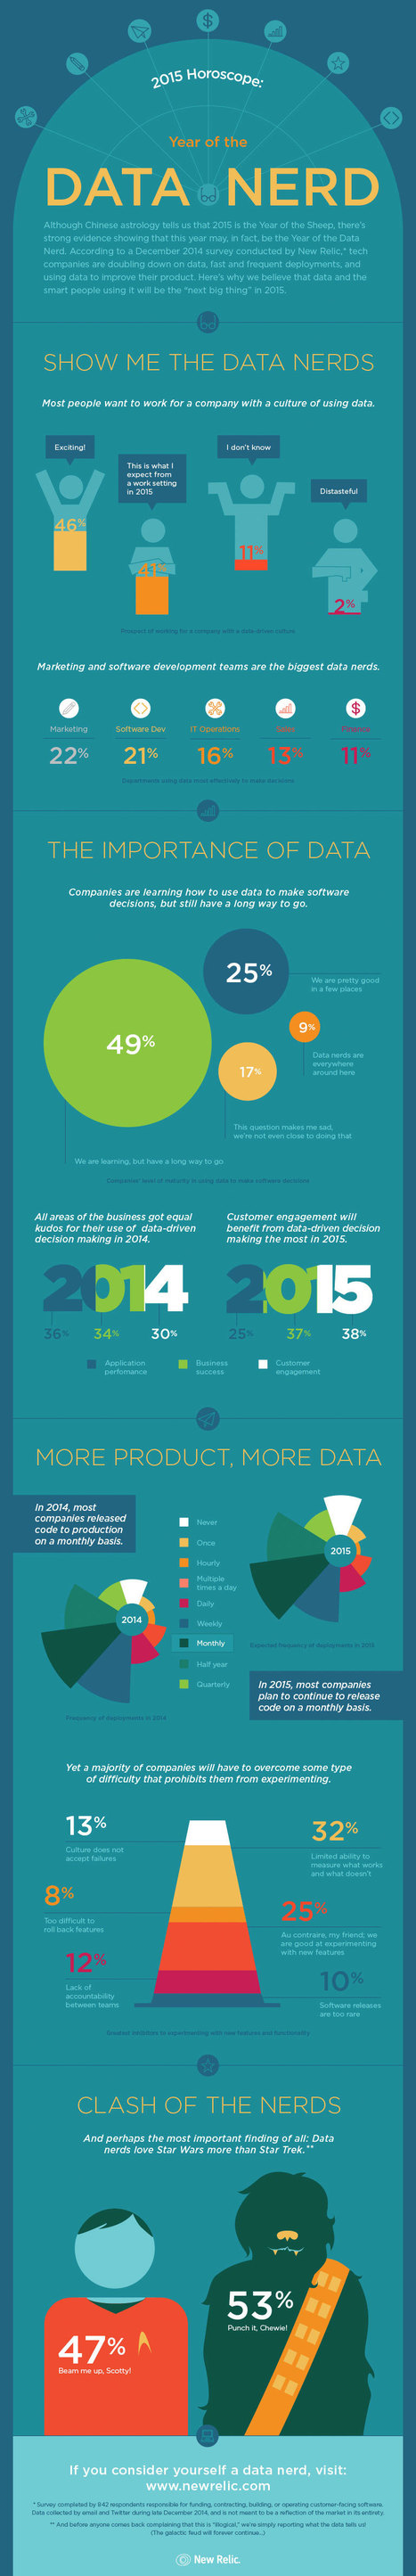 2015: The Year of the Data Nerd #Infographic | Expertiential Design | Scoop.it